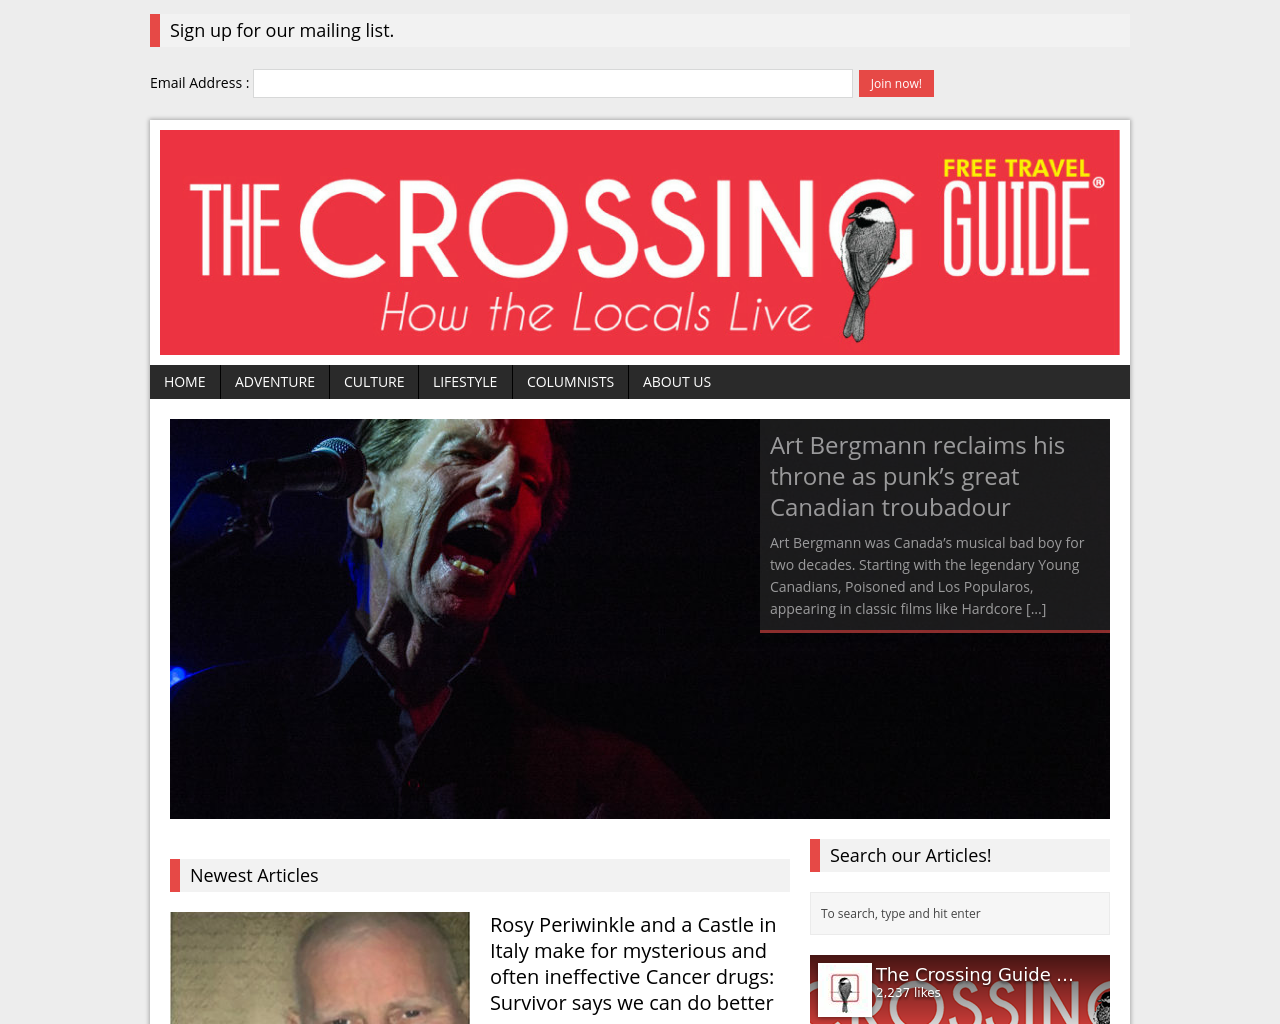 The-Crossing-Guide-Advertising-Reviews-Pricing